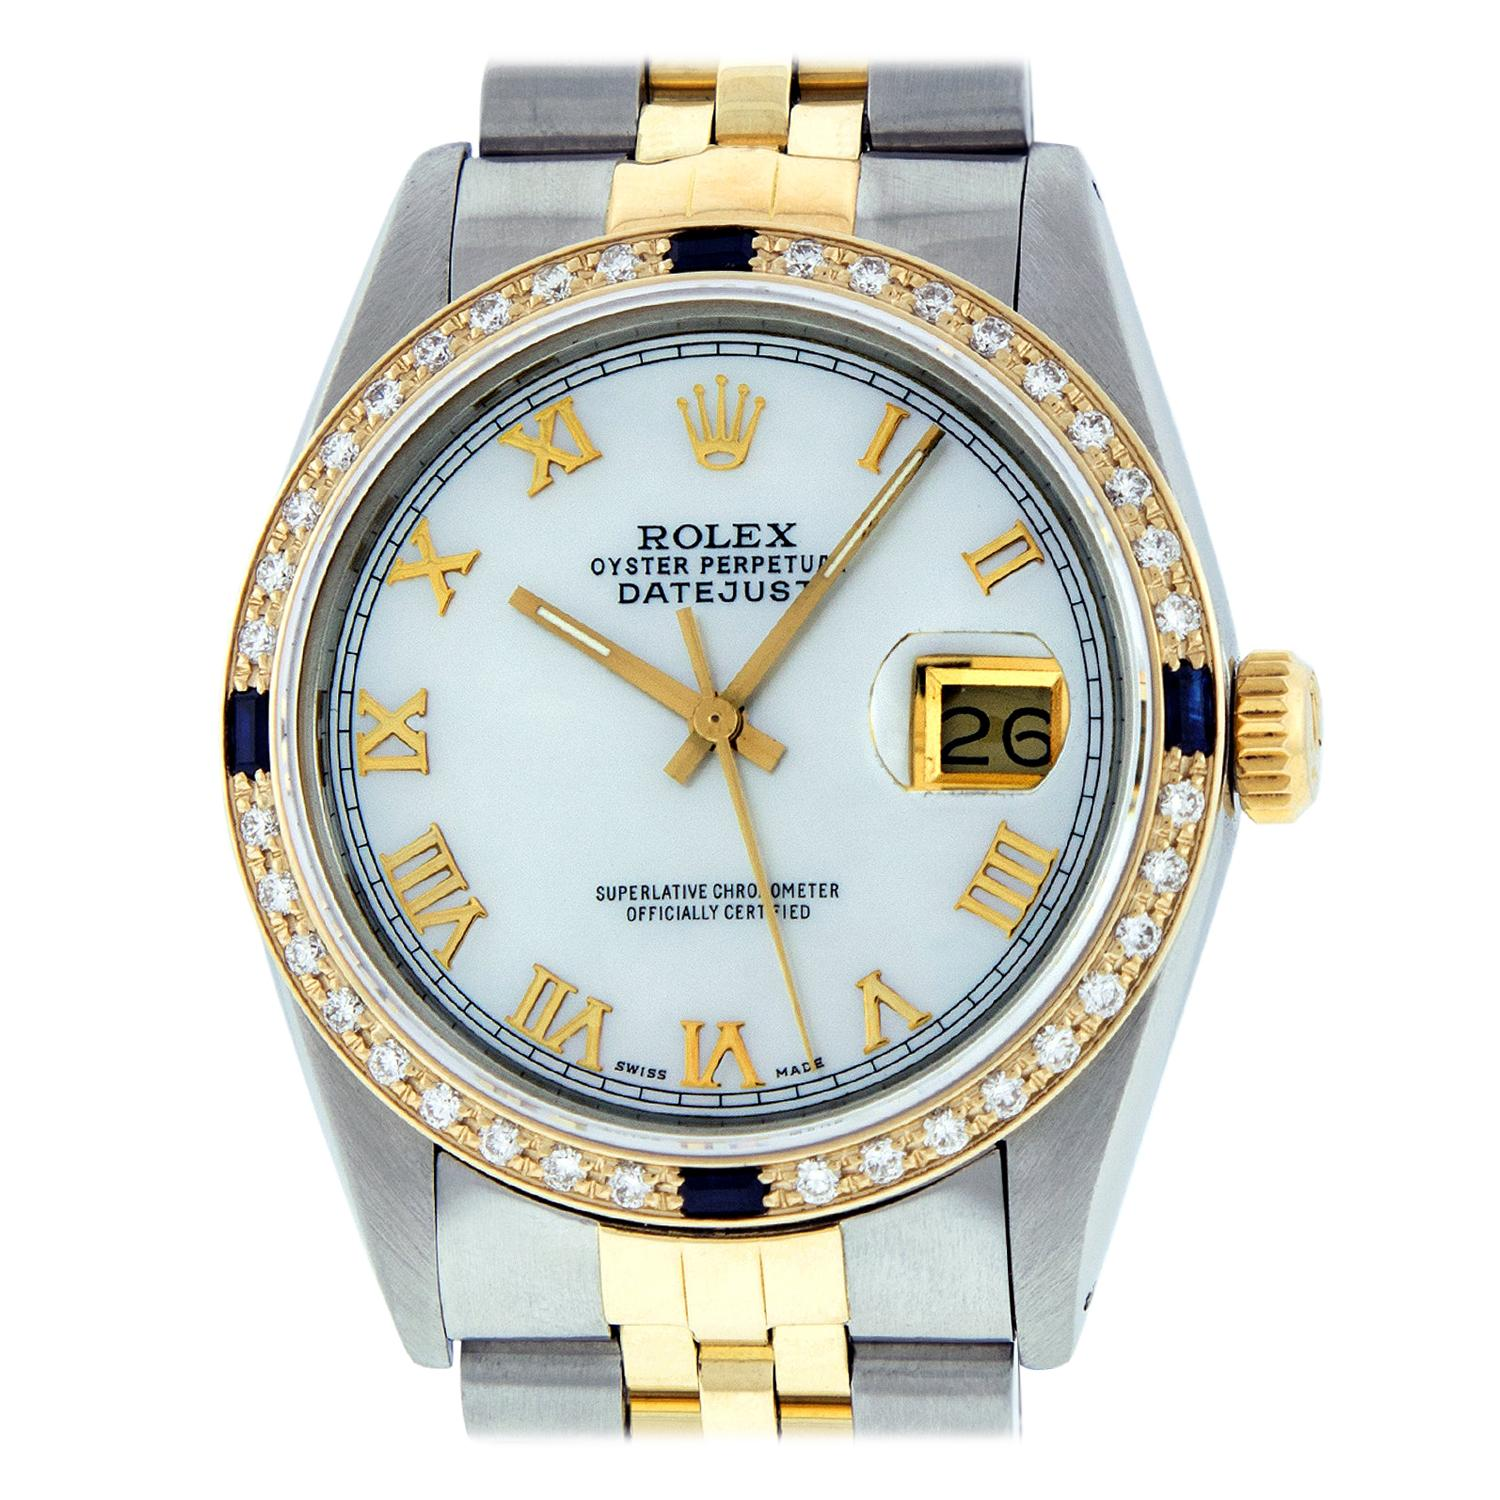 Rolex Men's Datejust Watch SS / 18K Yellow Gold MOP Roman Dial Diamond Bezel